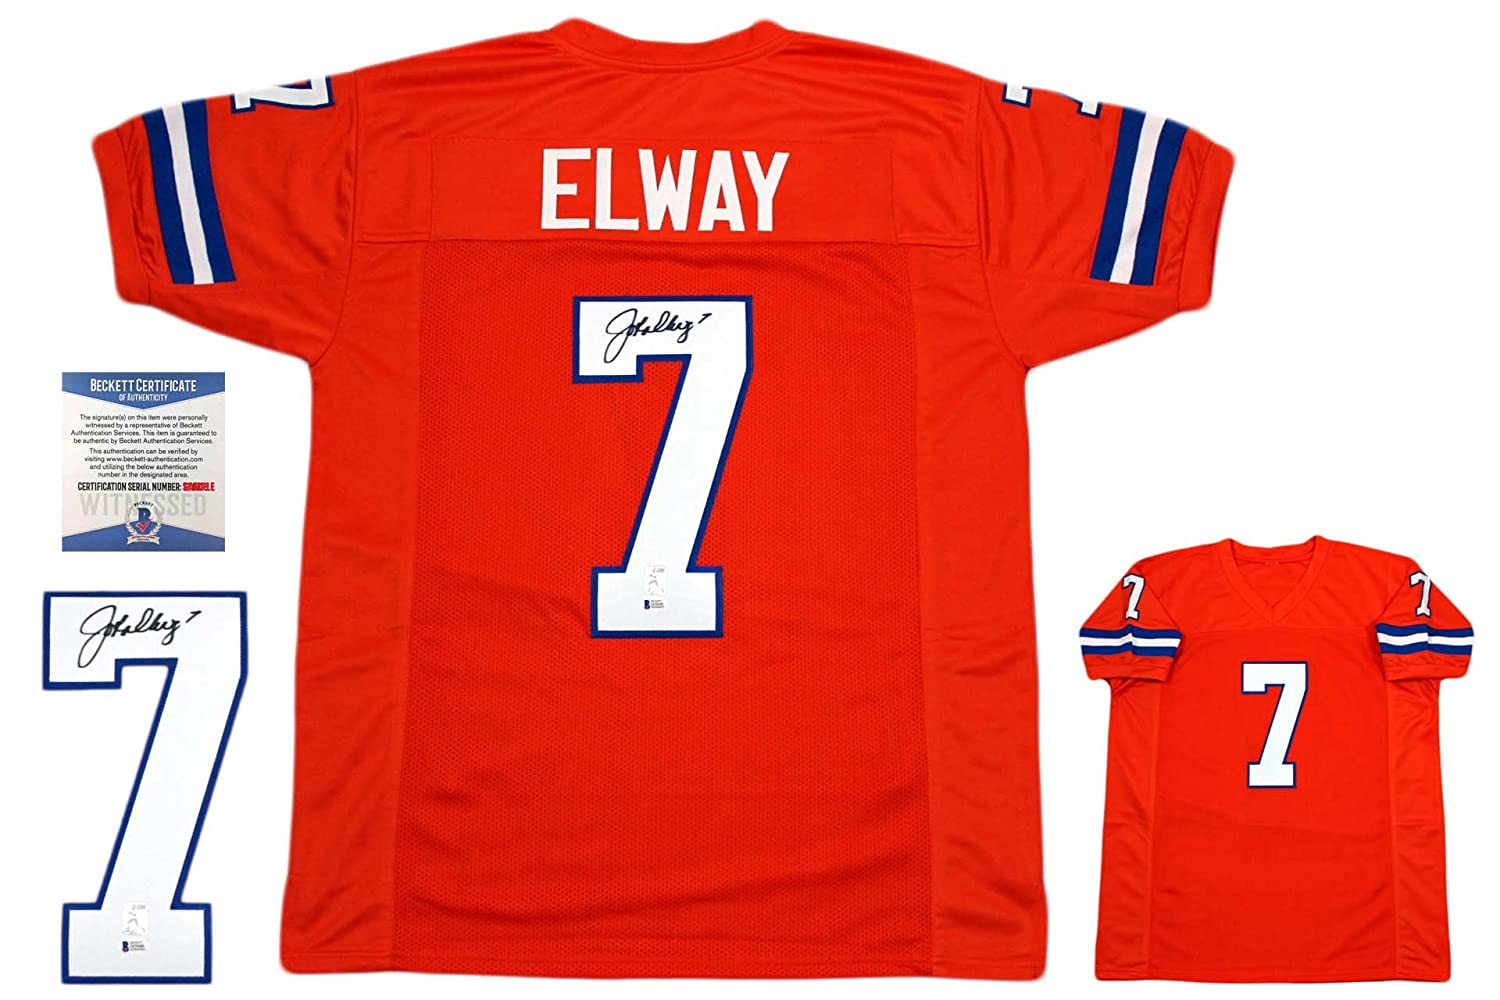 John Elway Autographed SIGNED Jersey - Beckett Witnessed Authentic - Orange